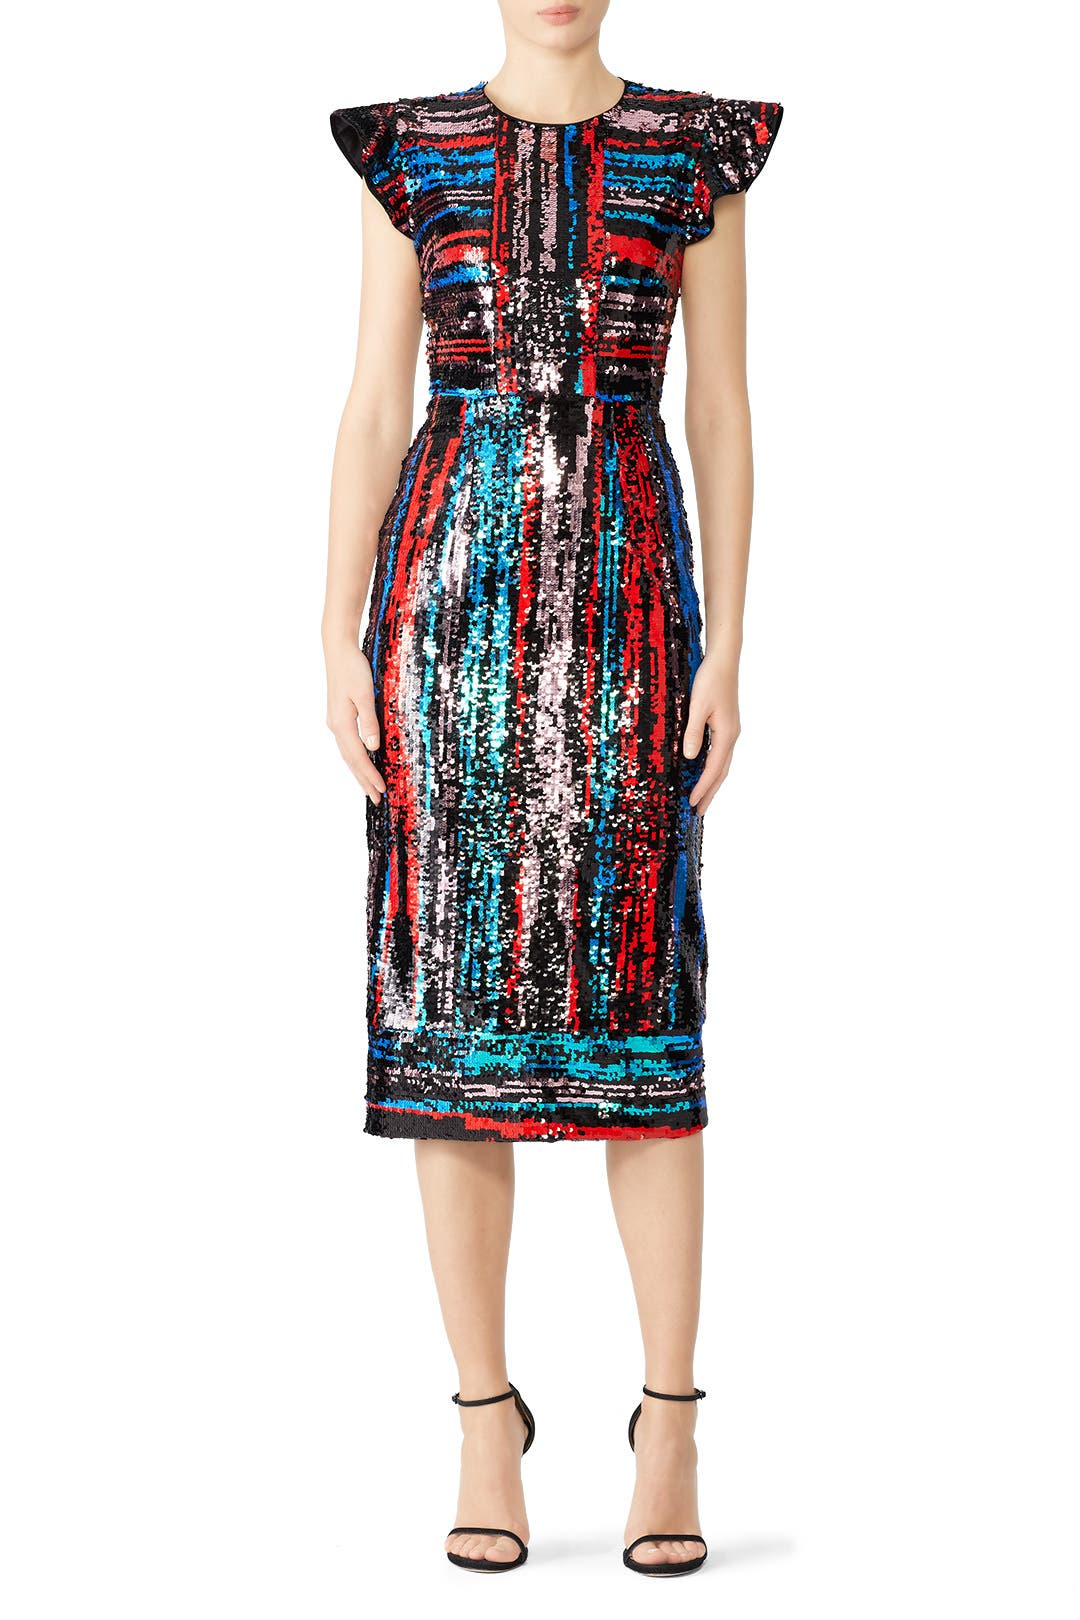 b69cfc992ea Sequin Roxy Dress by Hunter Bell for  75 -  98